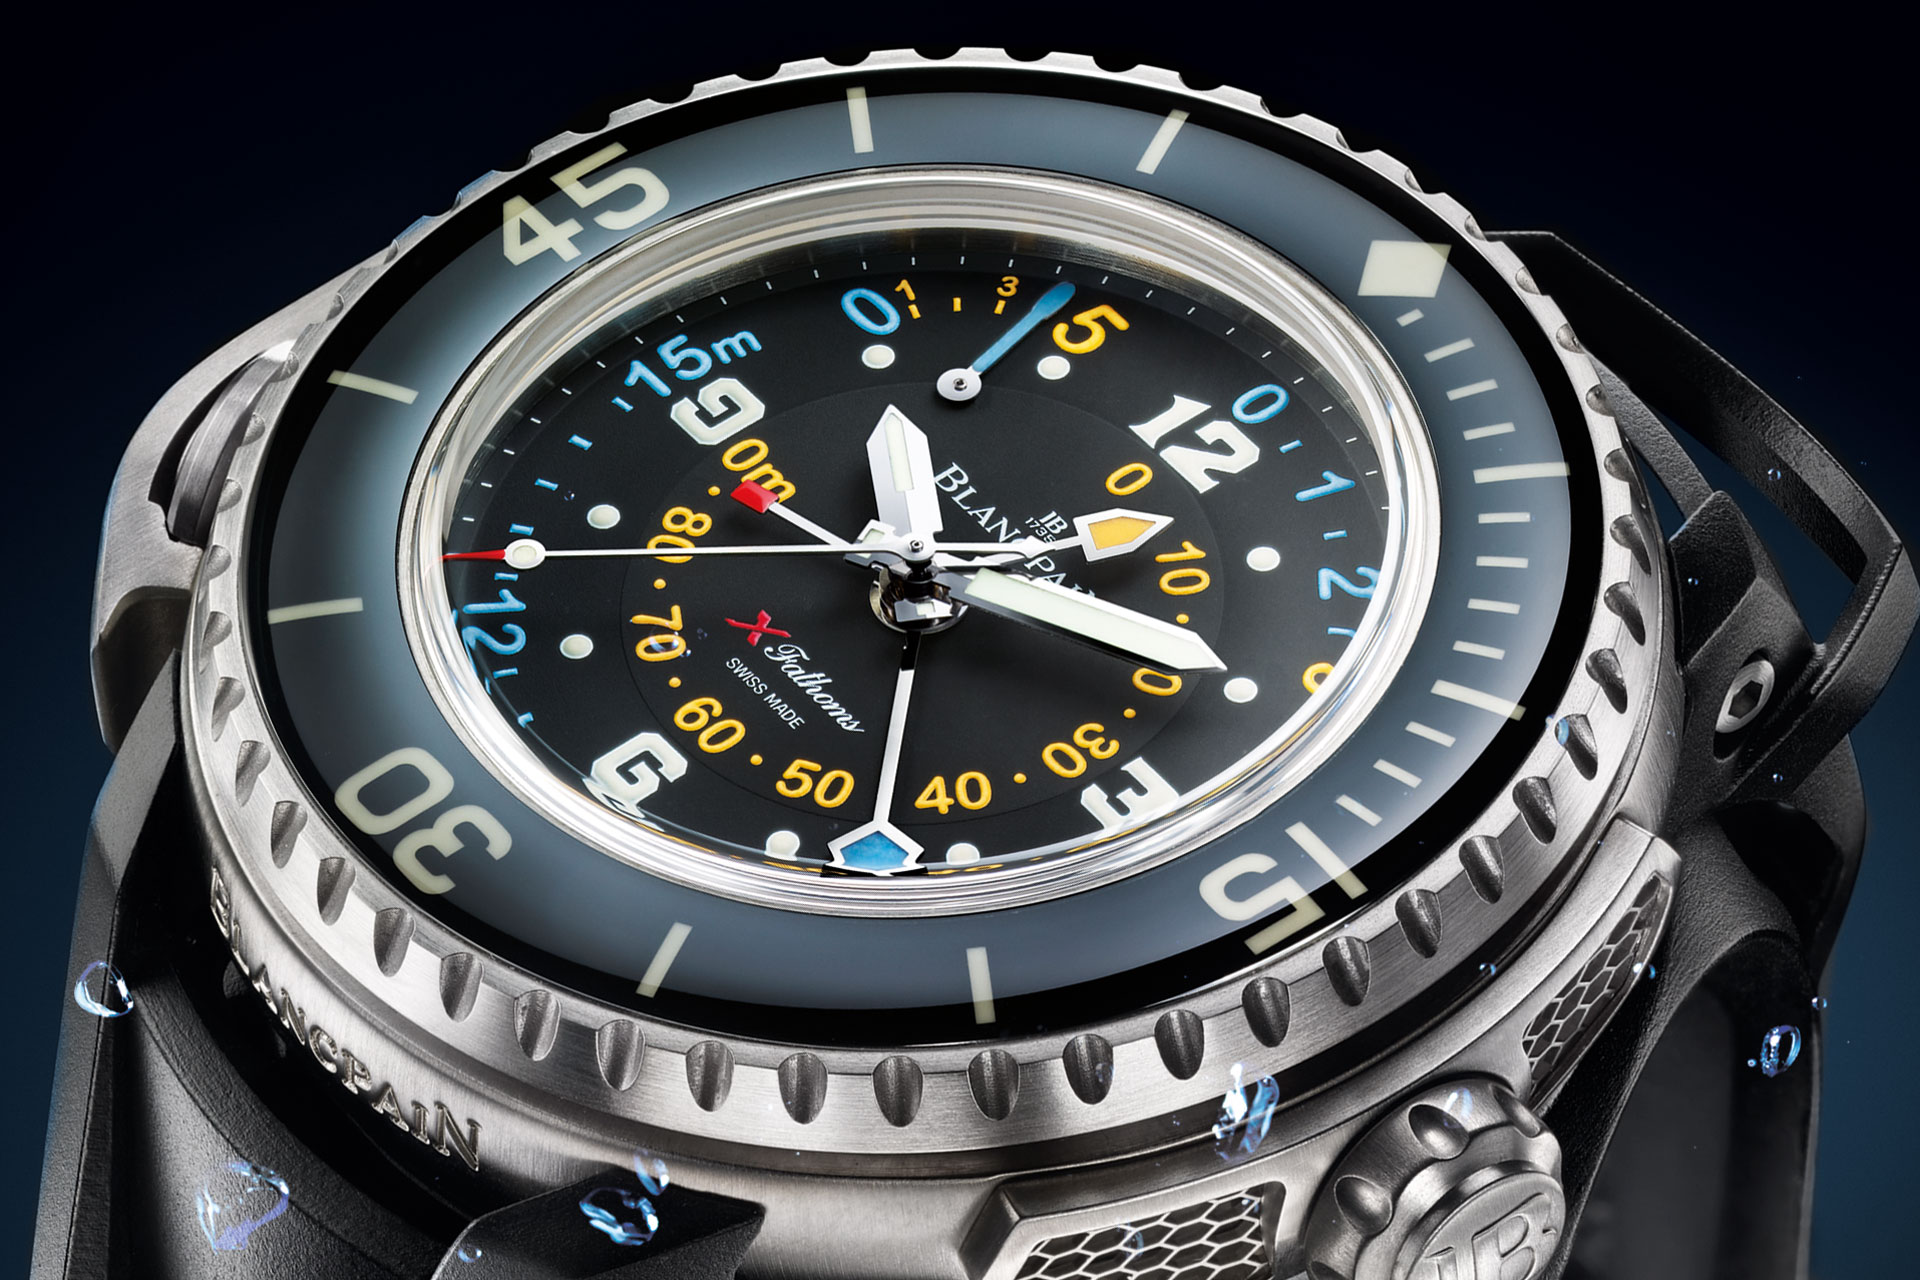 From Fifty Fathoms To X Fathoms Blancpain Revolution Watch